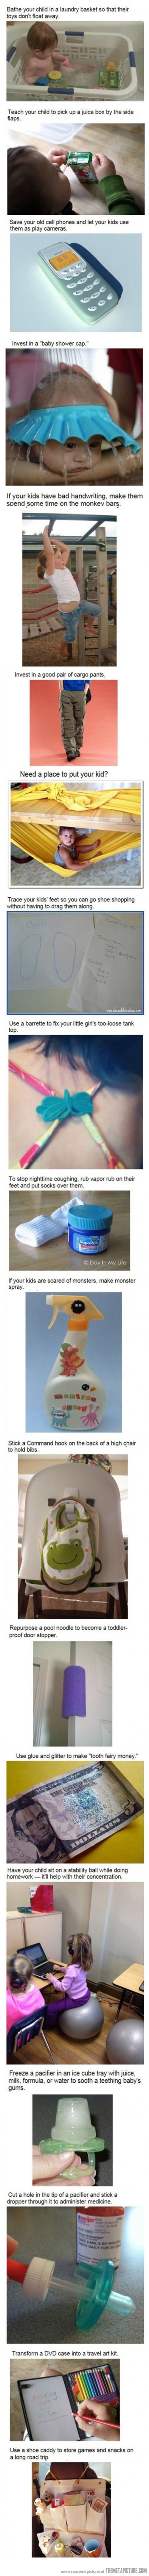 Don't have kids but if I did these would be great tips :-)